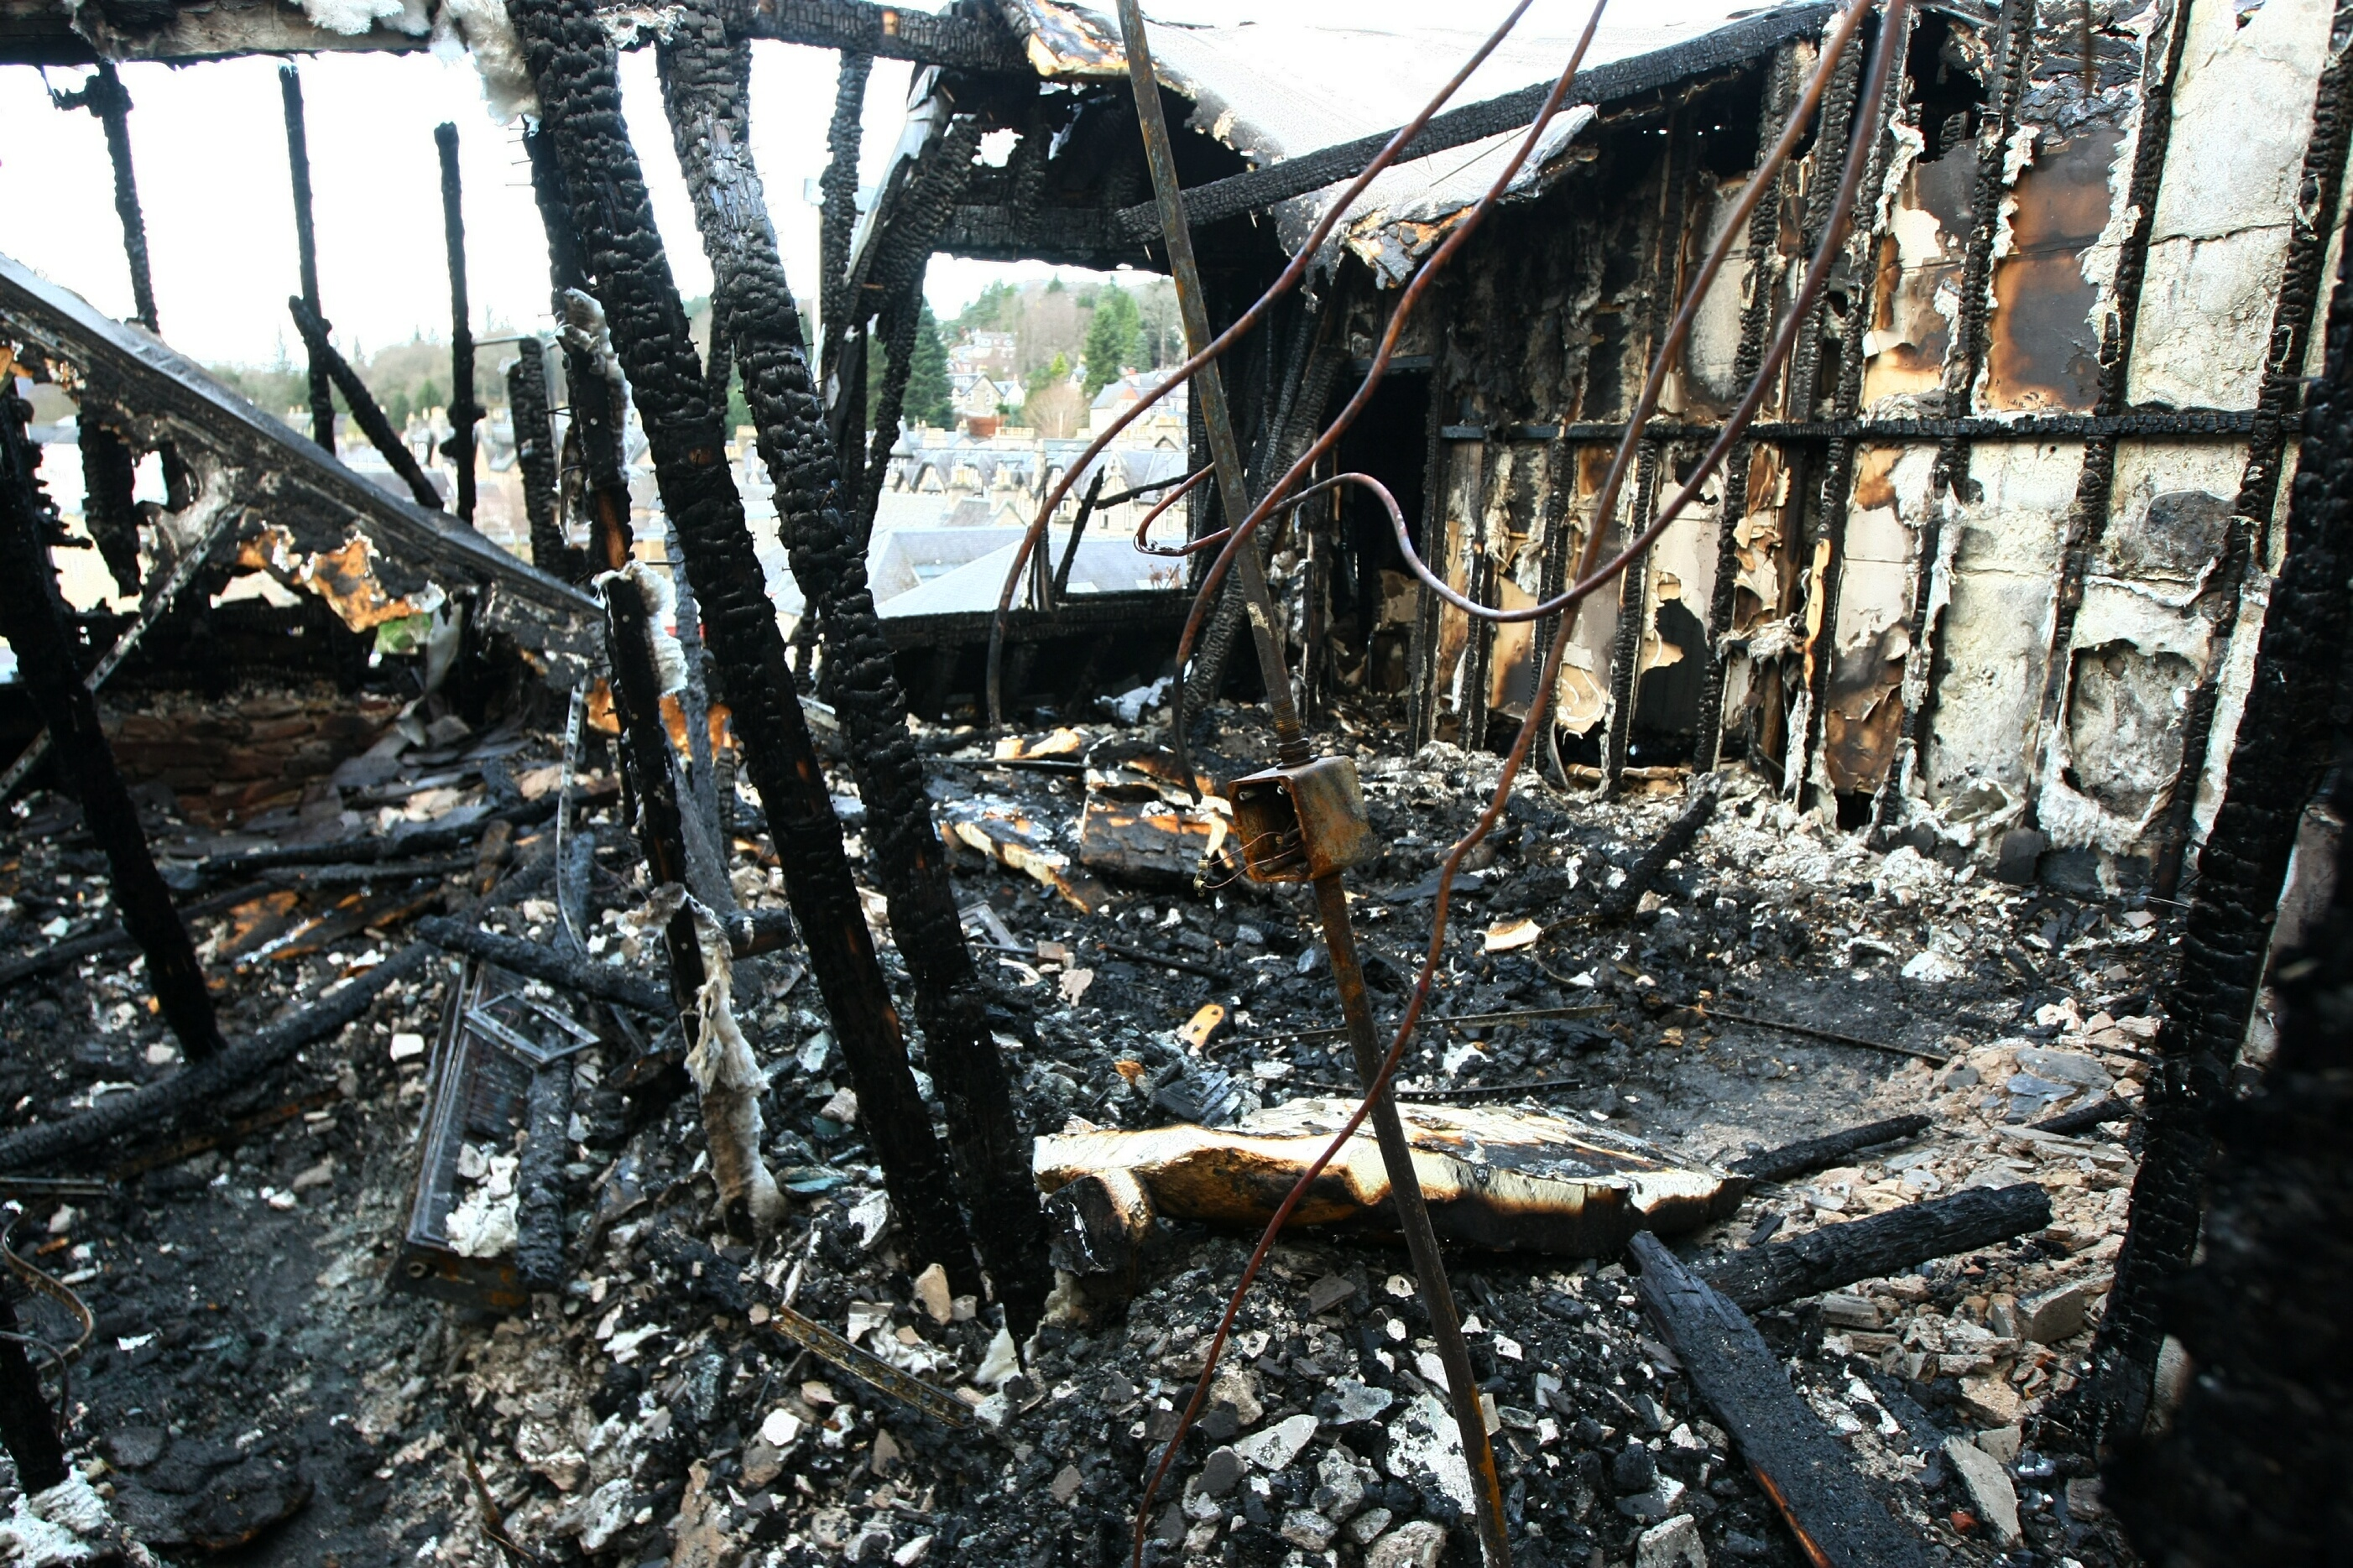 The aftermath of the Fishers Hotel fire which was started accidentally by a stray firework.